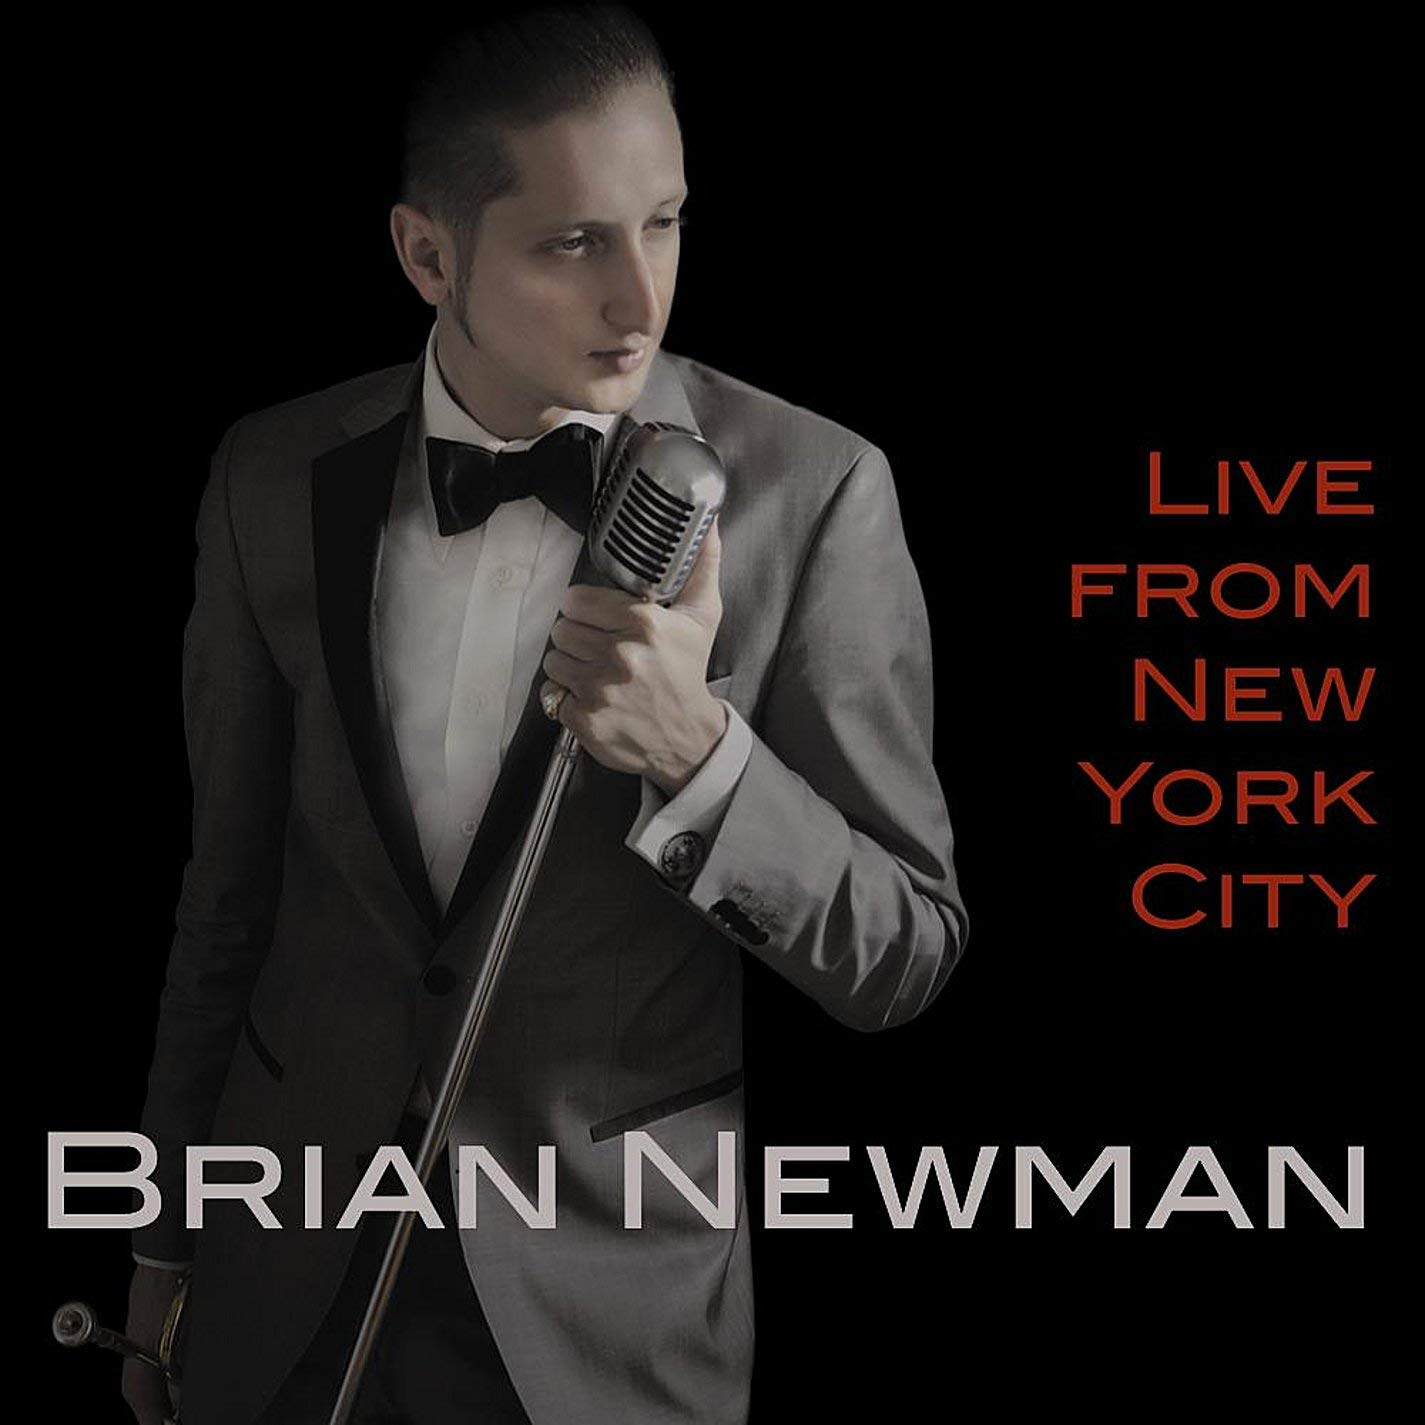 Brian Newman - Live From New York City